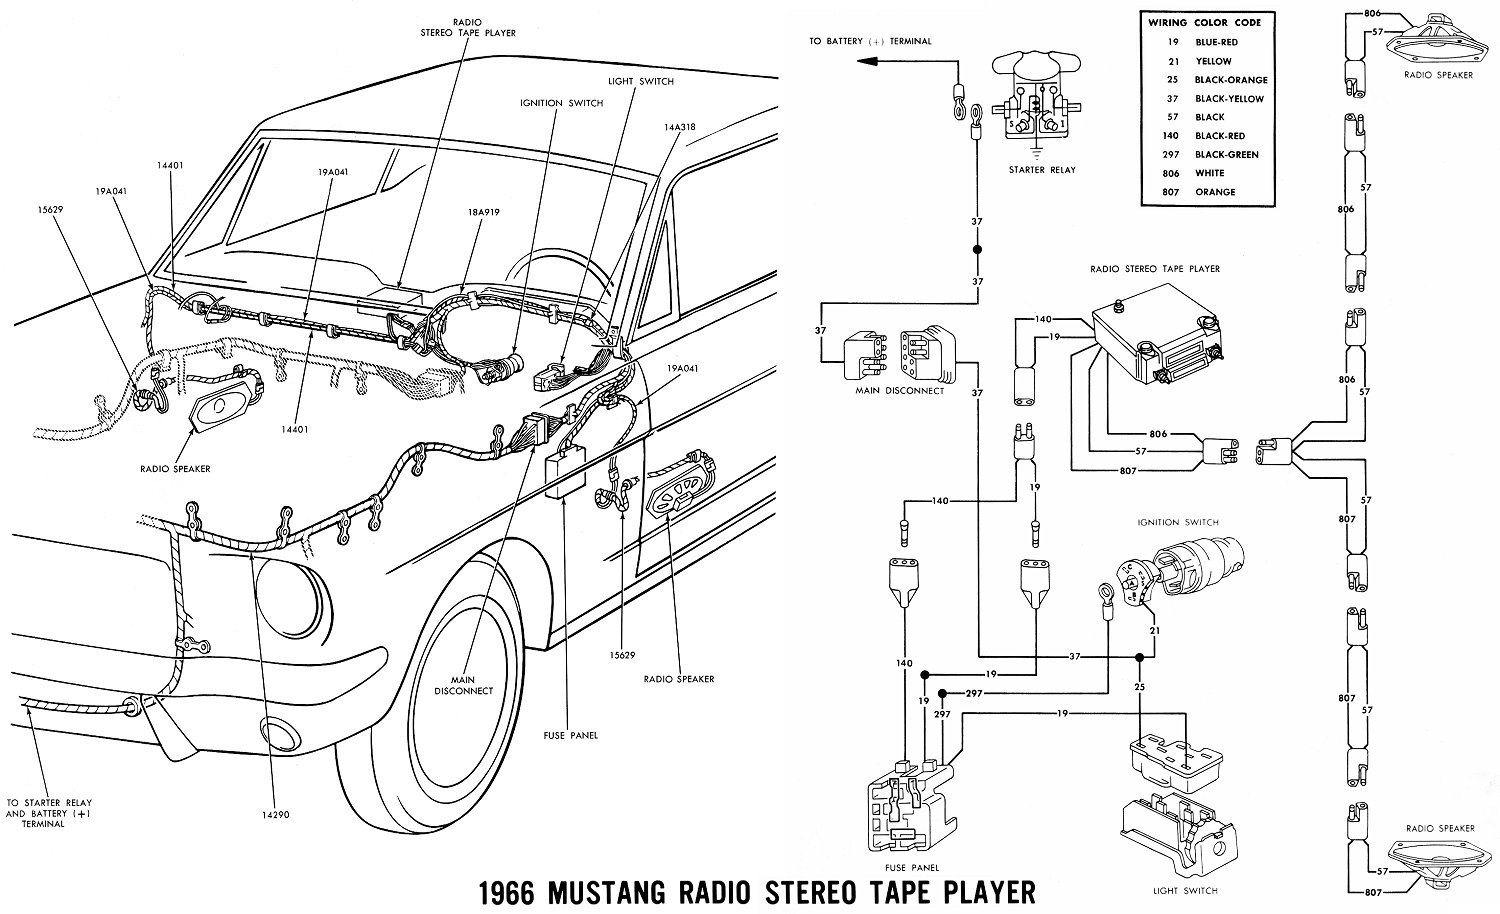 66stereo 66 mustang wiring diagram radio tape 66 mustang fuse diagram 1970 mustang radio wiring diagram at virtualis.co